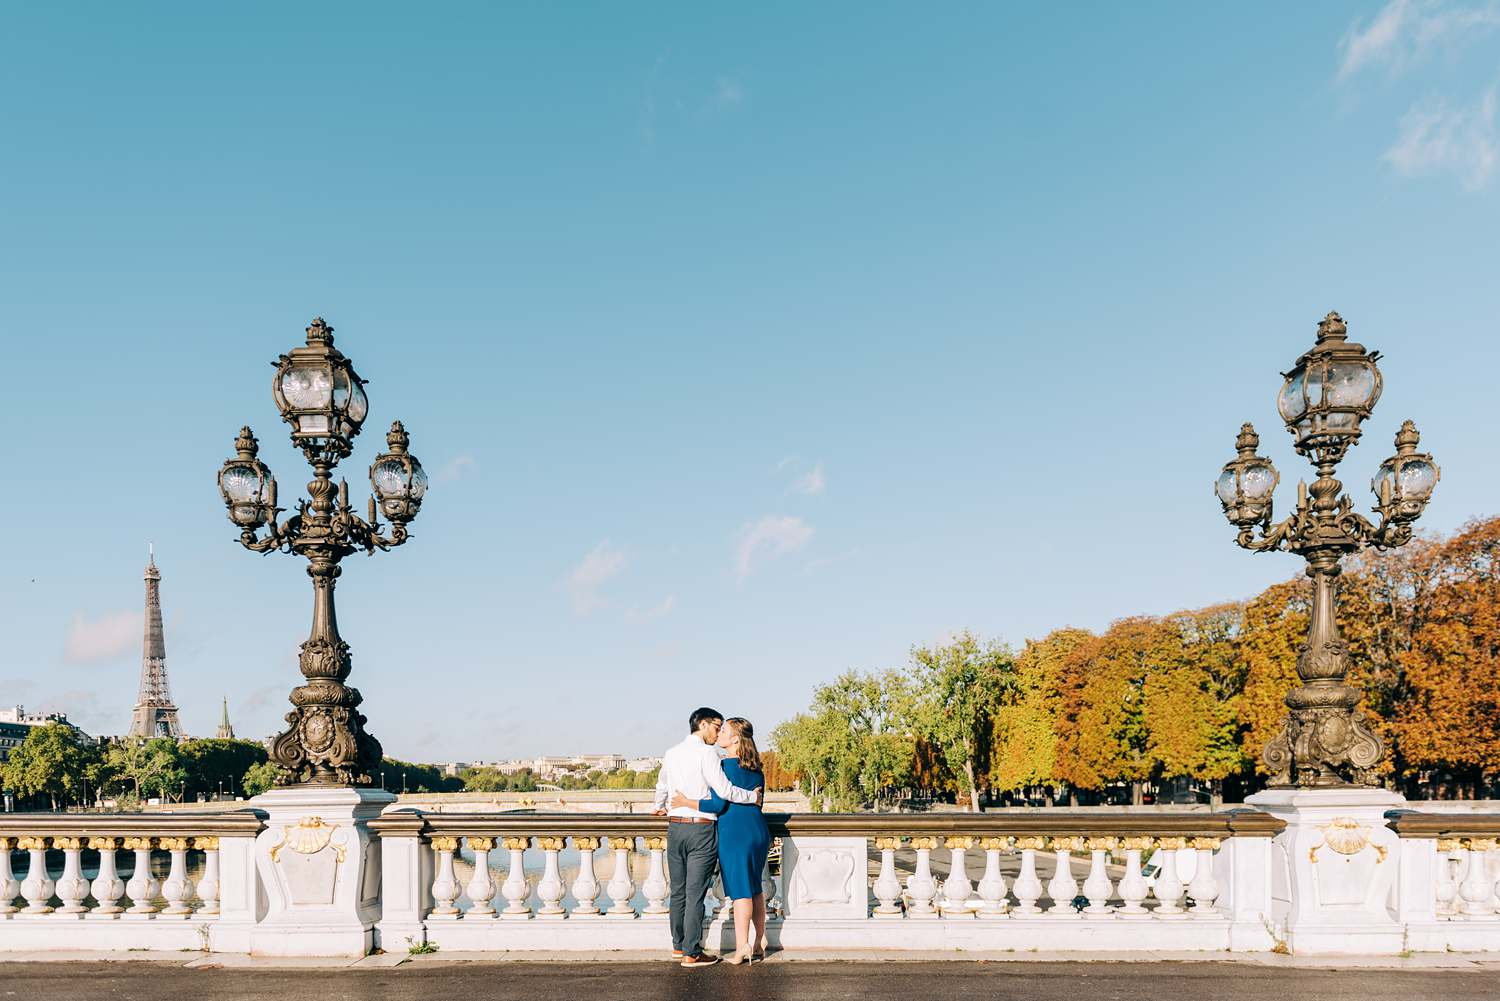 engagement photography session in paris on the pont alexandre iii bridge, wide shot with the couple kissing in the center and the eiffel tower in the distance on a sunny day